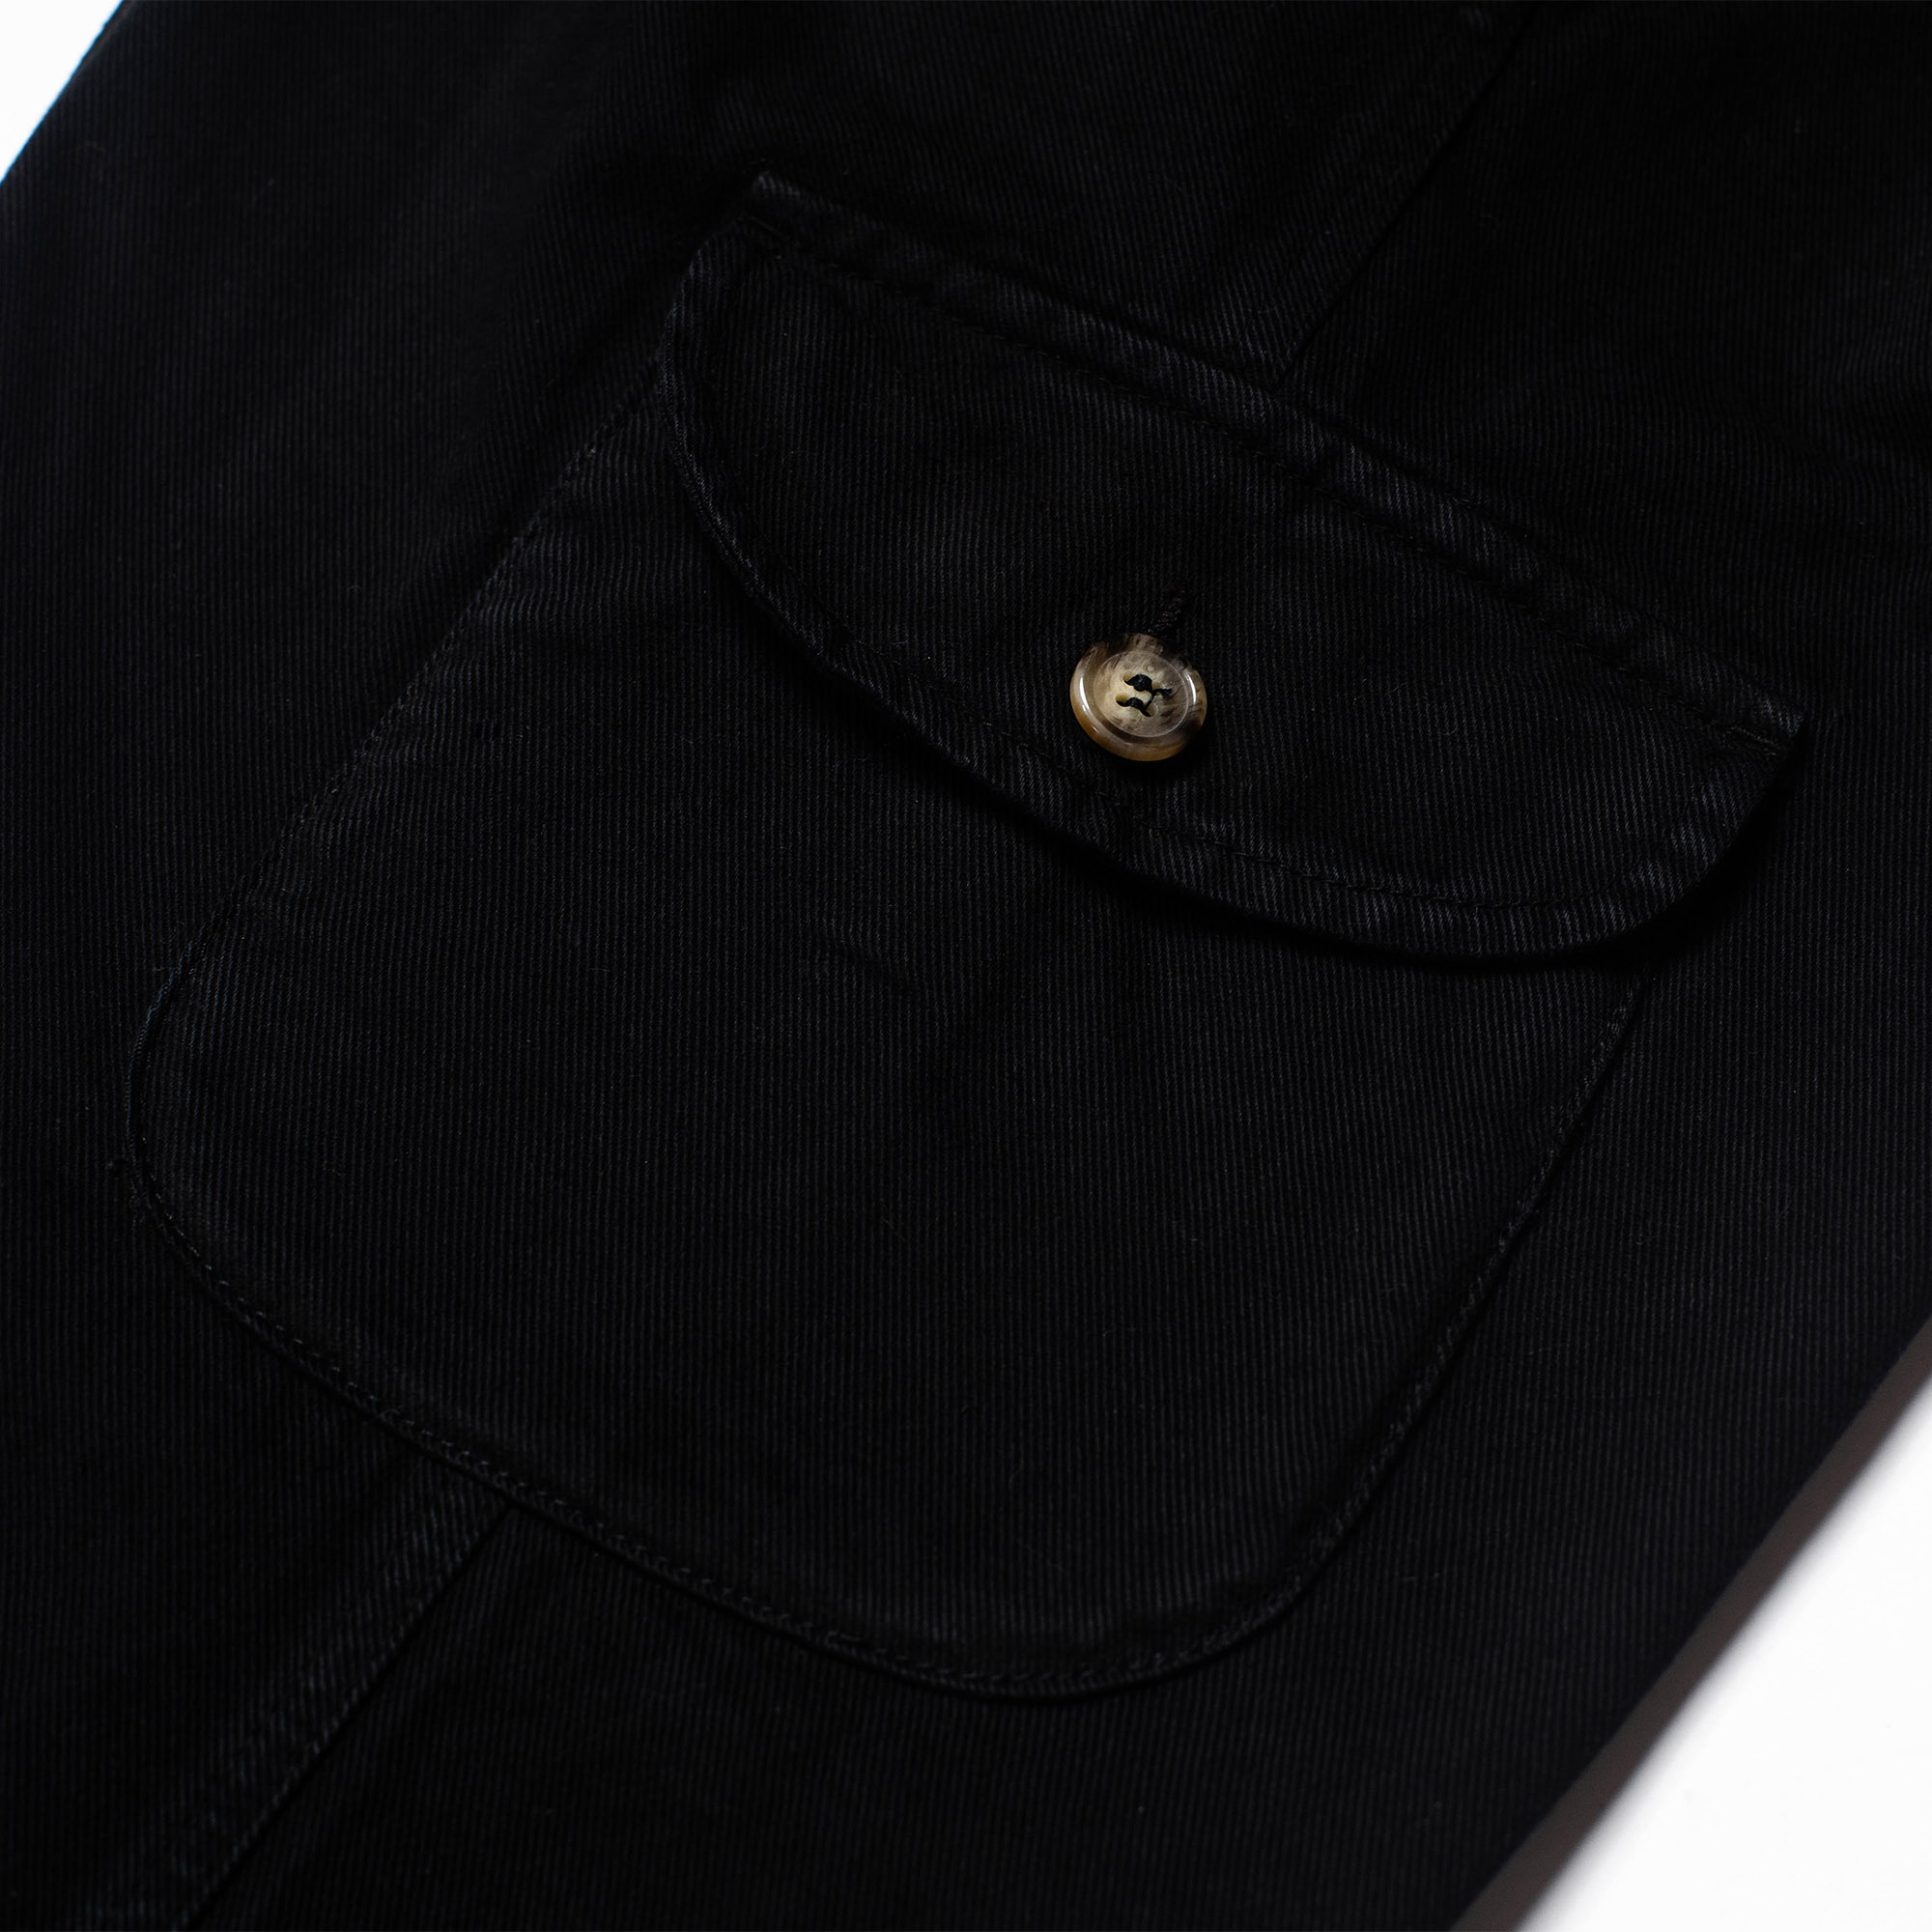 shangri-la-heritage-explorator-black-cotton-twill-pants-still-life-cargo-pocket